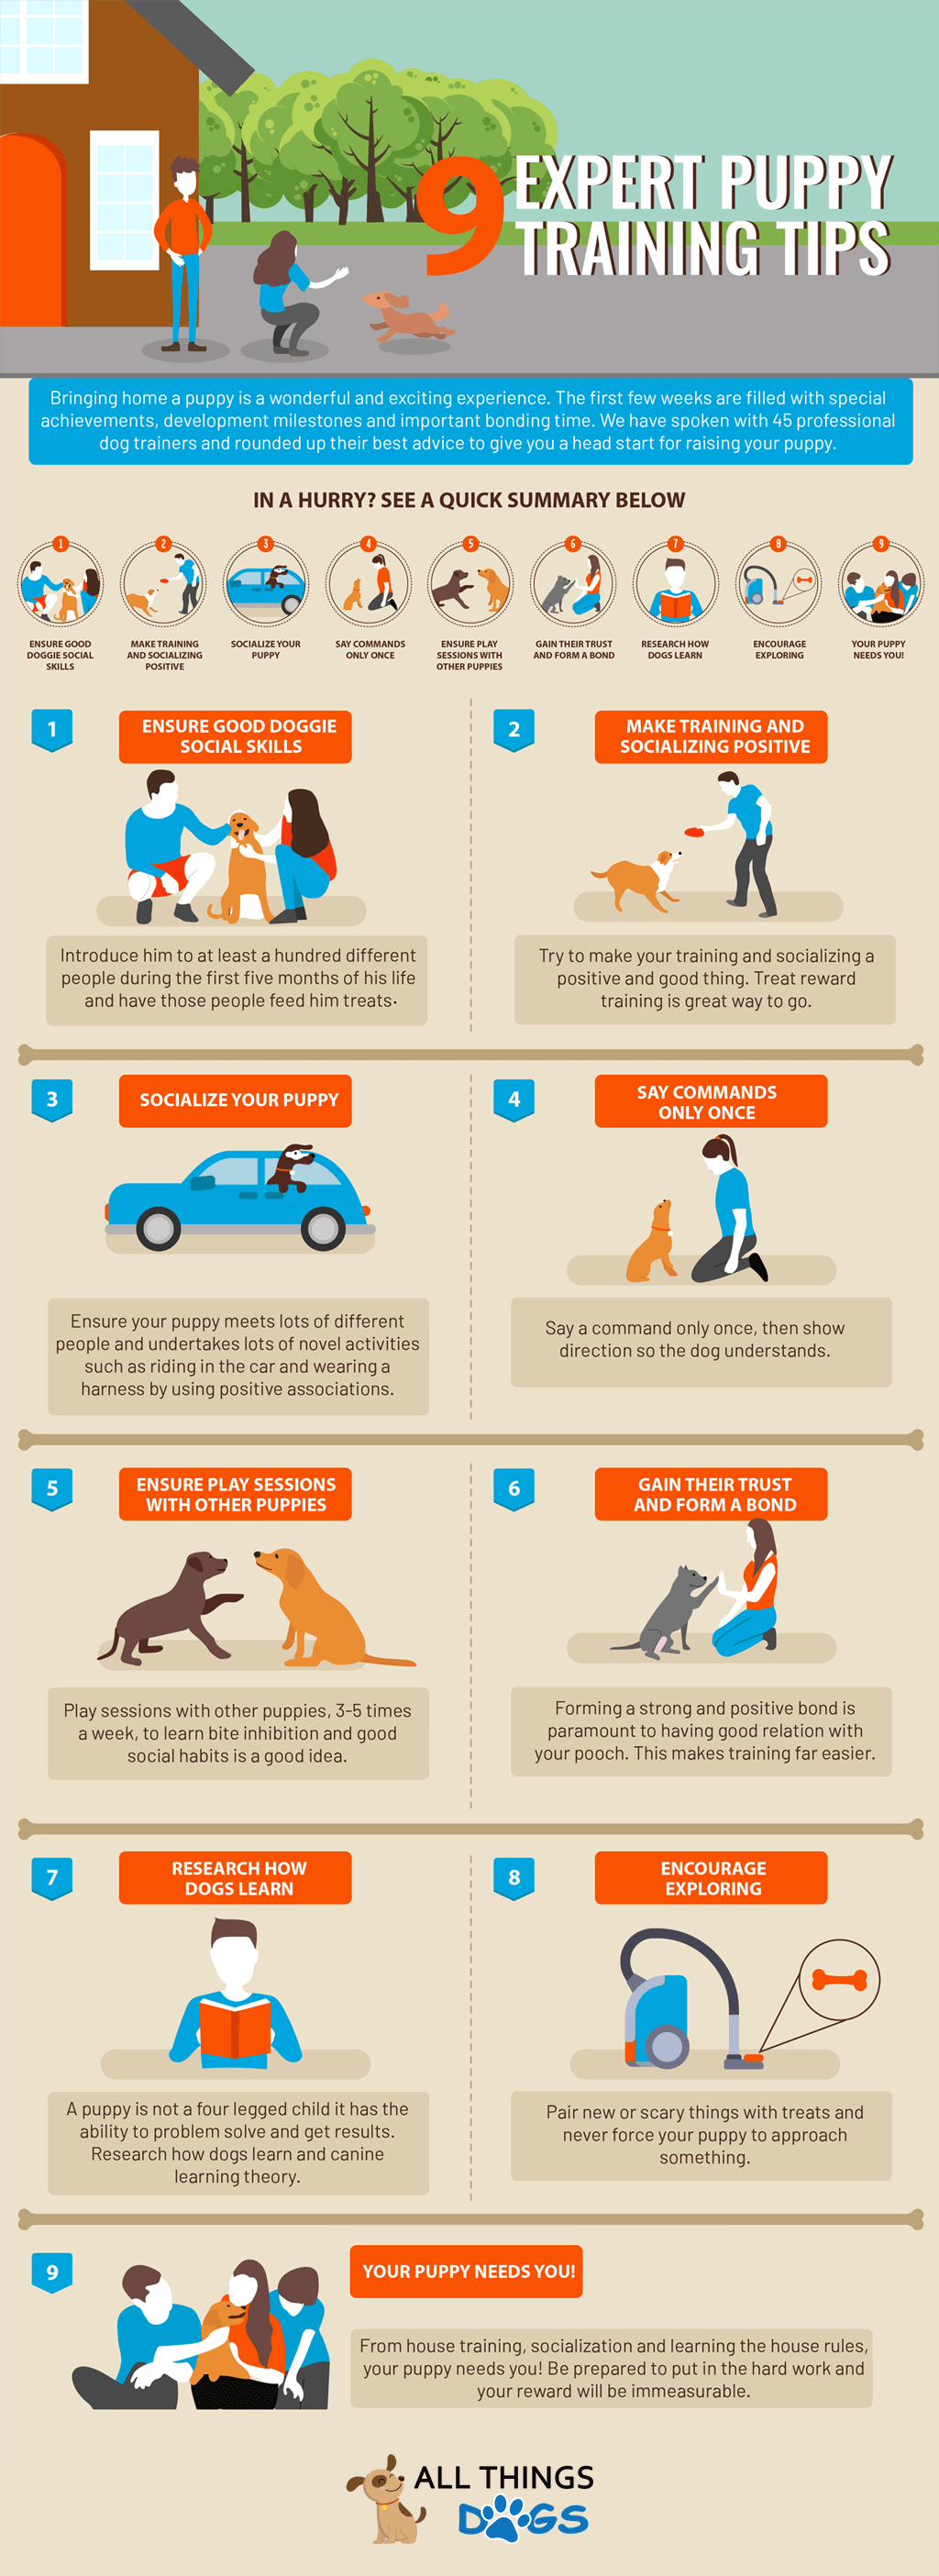 The Best 9 Puppy Training Tips